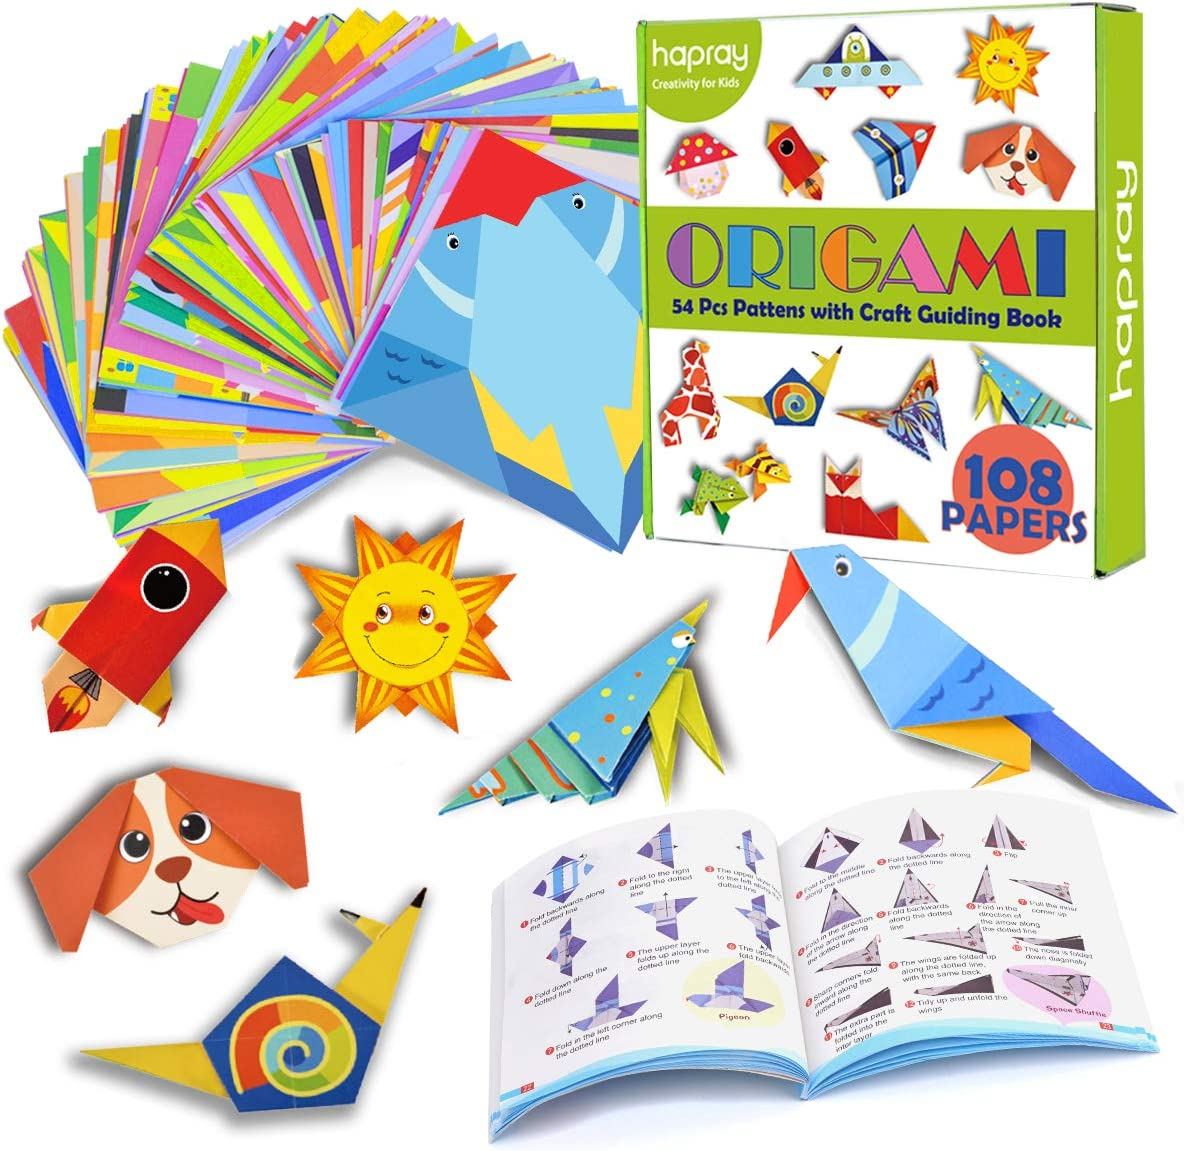 hapray Origami Kit for Kids Beginners 55 Pages Instructional Origami Book Origami Paper for DIY Art and Craft Projects 118 Sheets Double-Sided Origami with 54 Patterns Children Gifts